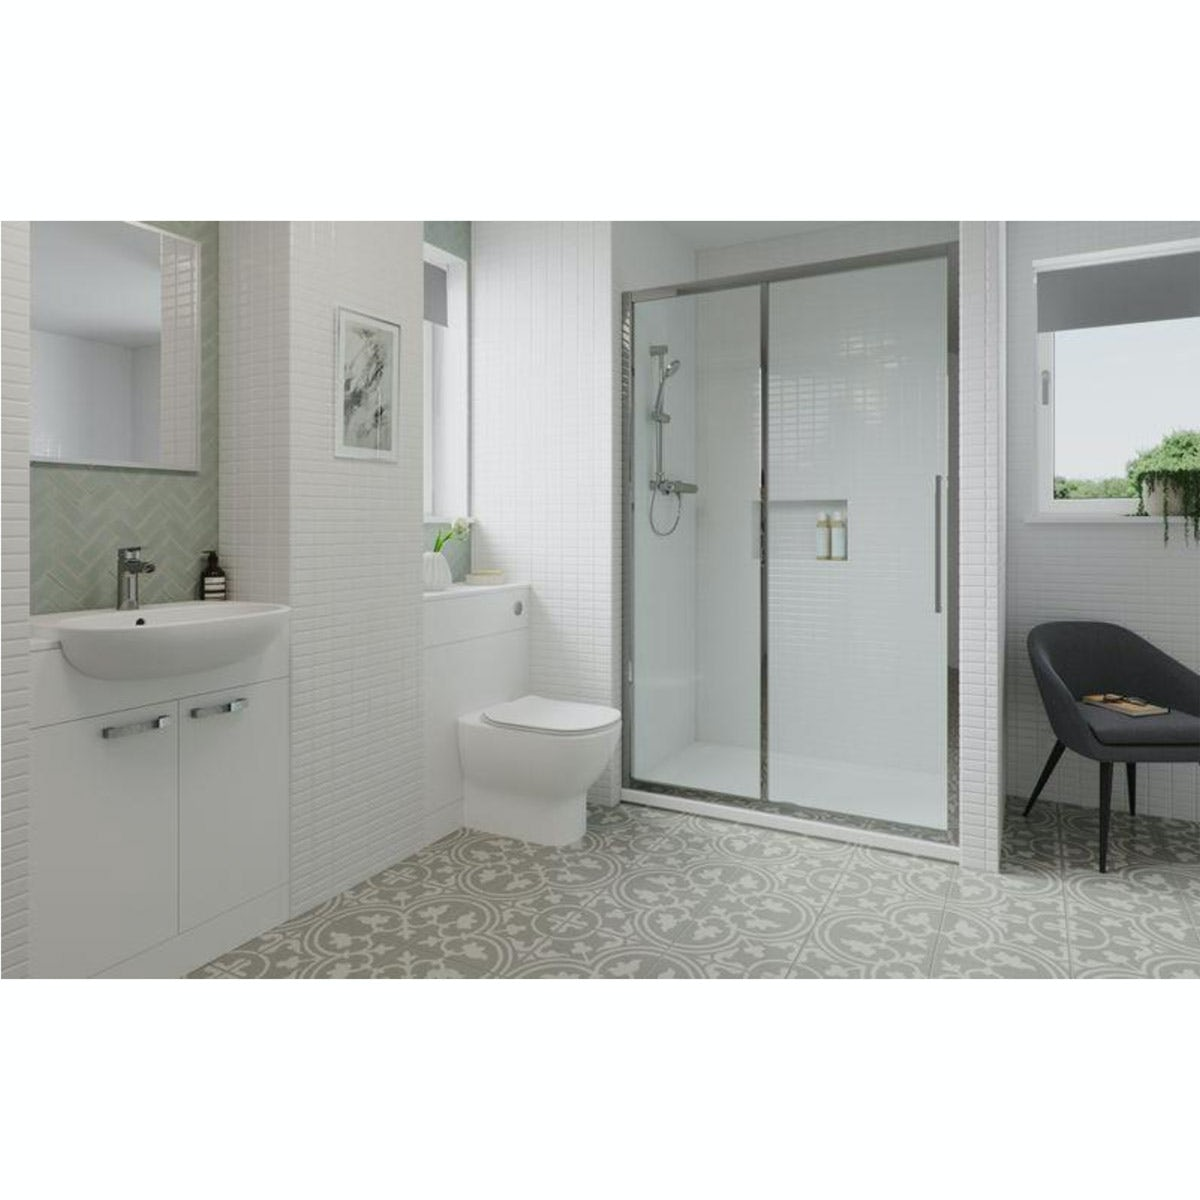 Ideal Standard Tesi Ensuite Suite With Shower Enclosure, Furniture Set, Tray, Shower, Taps And Waste 1200mm